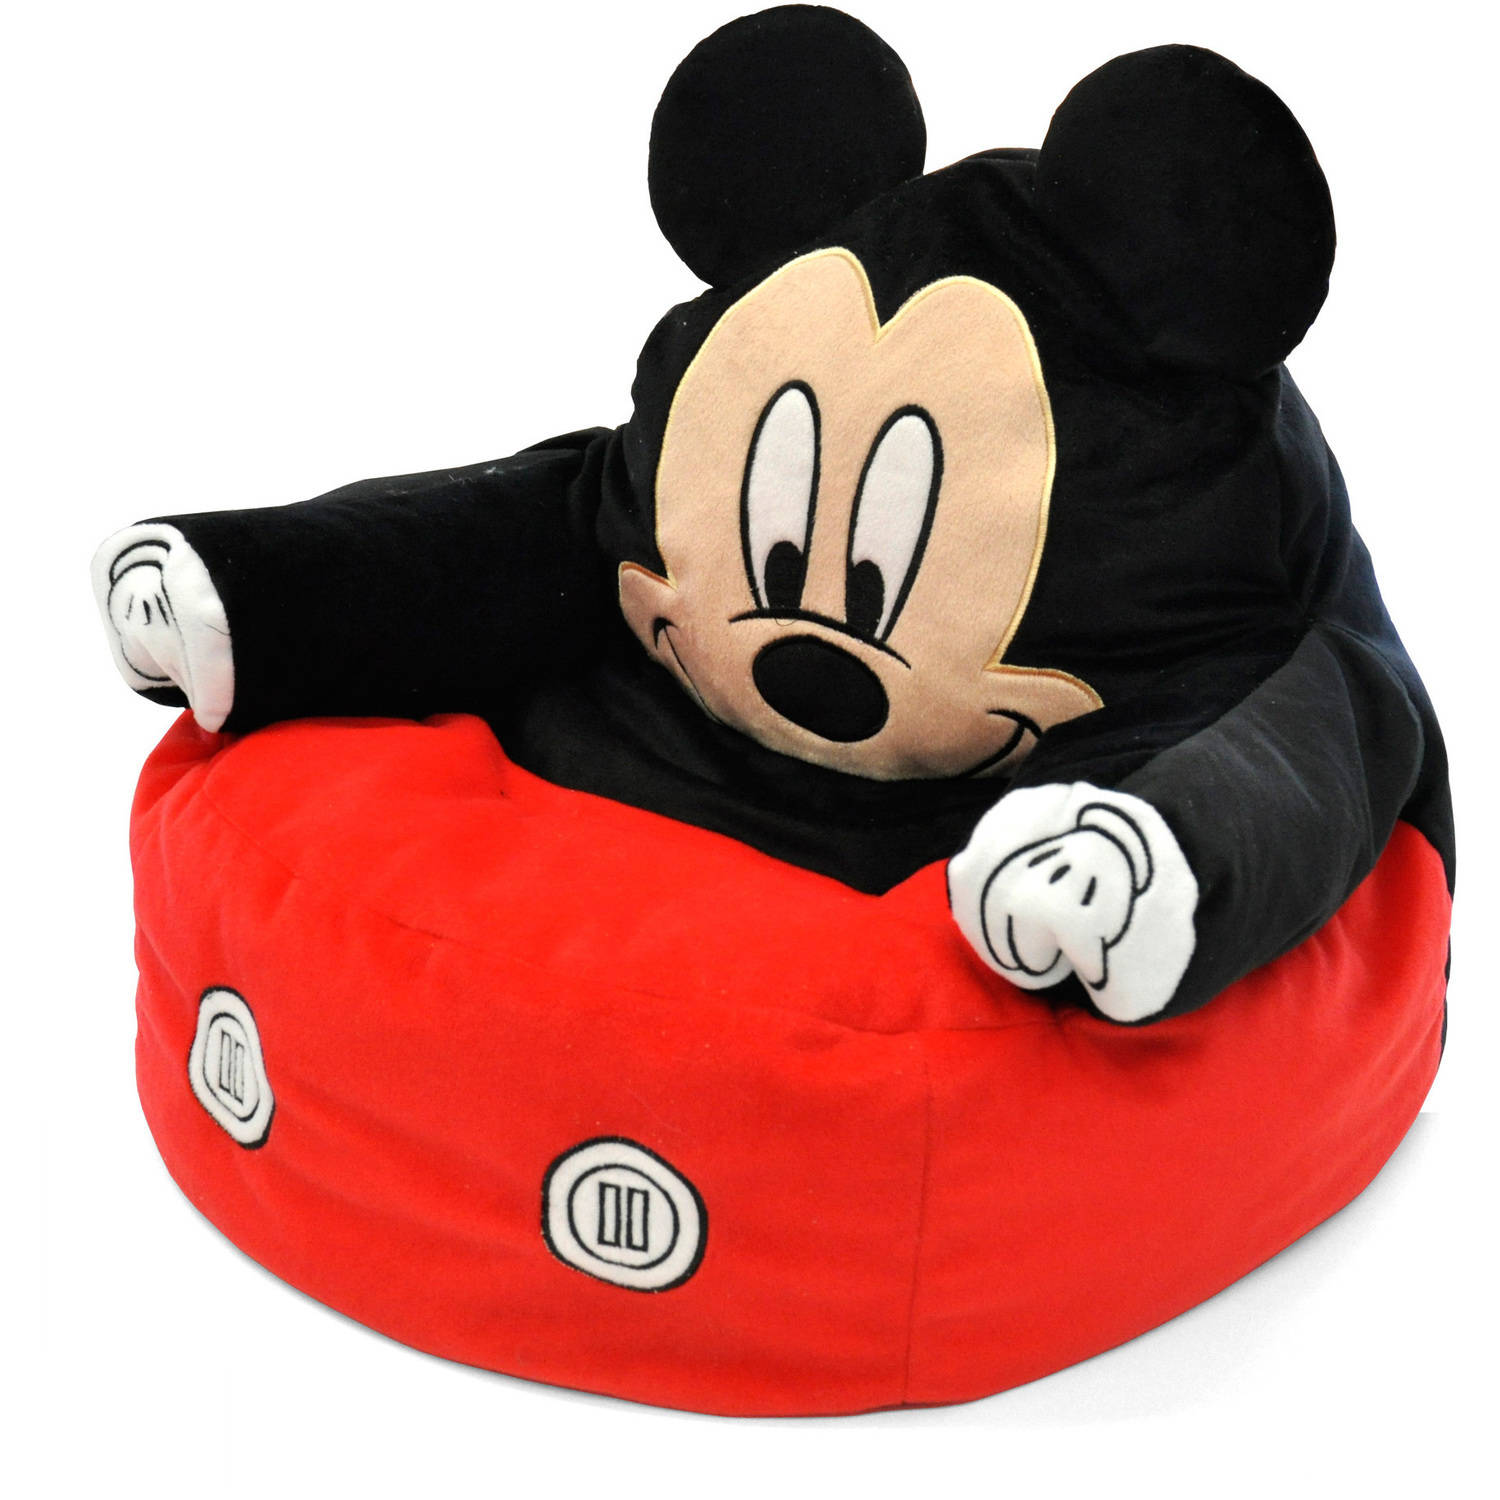 Mickey Mouse Character Figural Toddler Bean Chair